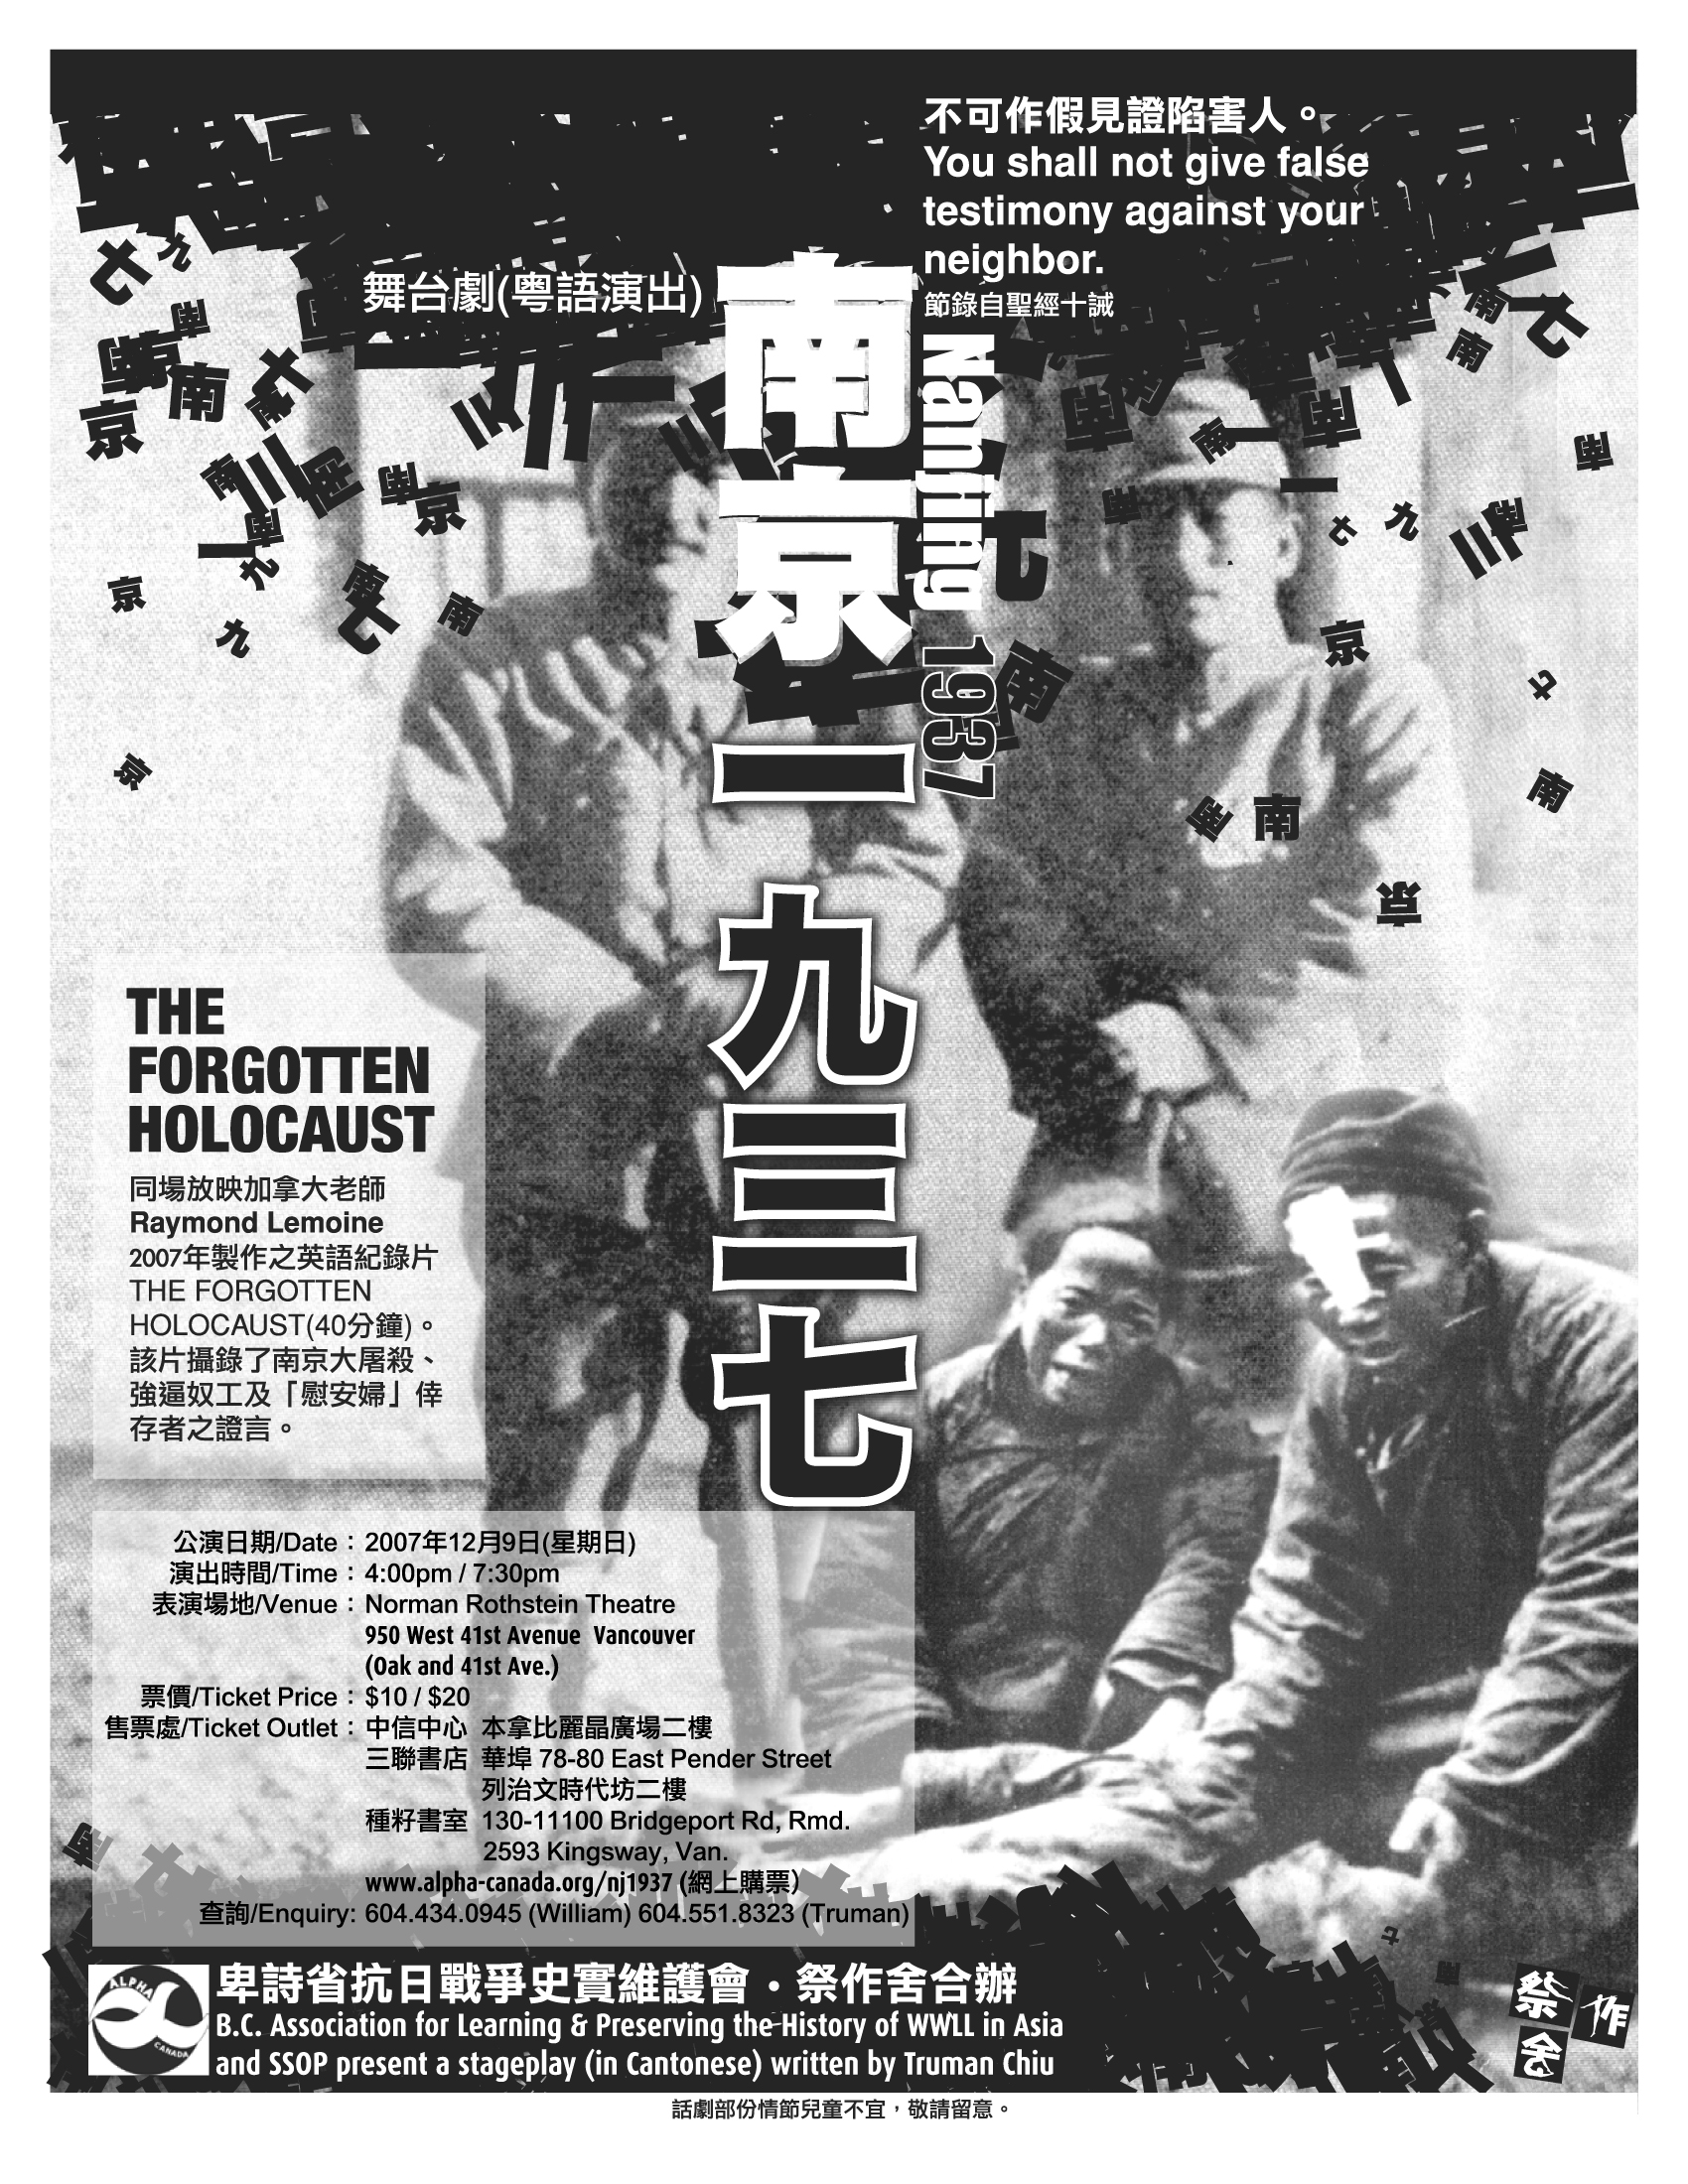 the forgotten holocaust in nanjing china The forgotten holocaust by liu wei (china daily) in december 2005, co-producer violet du feng met more than 30 survivors in nanjing, while leonsis.